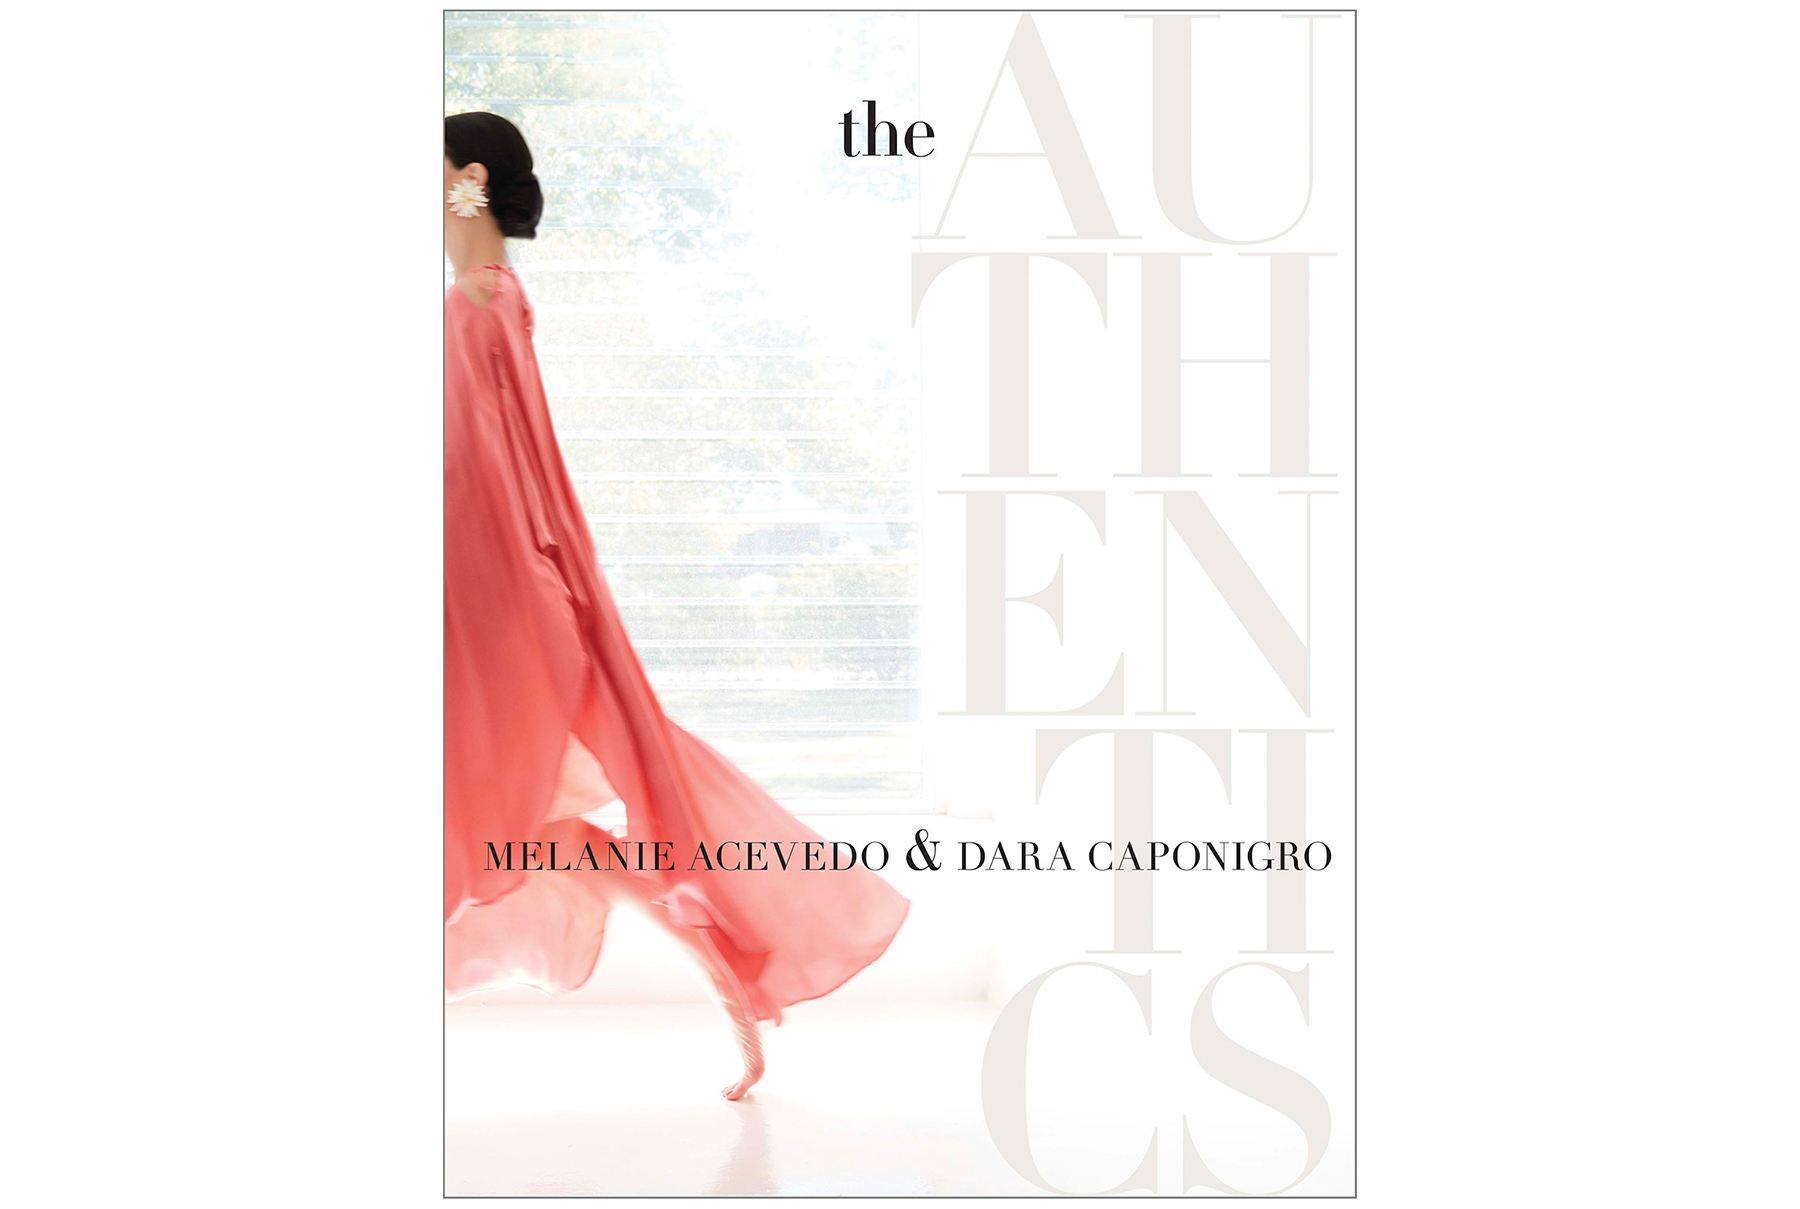 The Authentiques, by Melanie Acevedo and Dara Caponigro